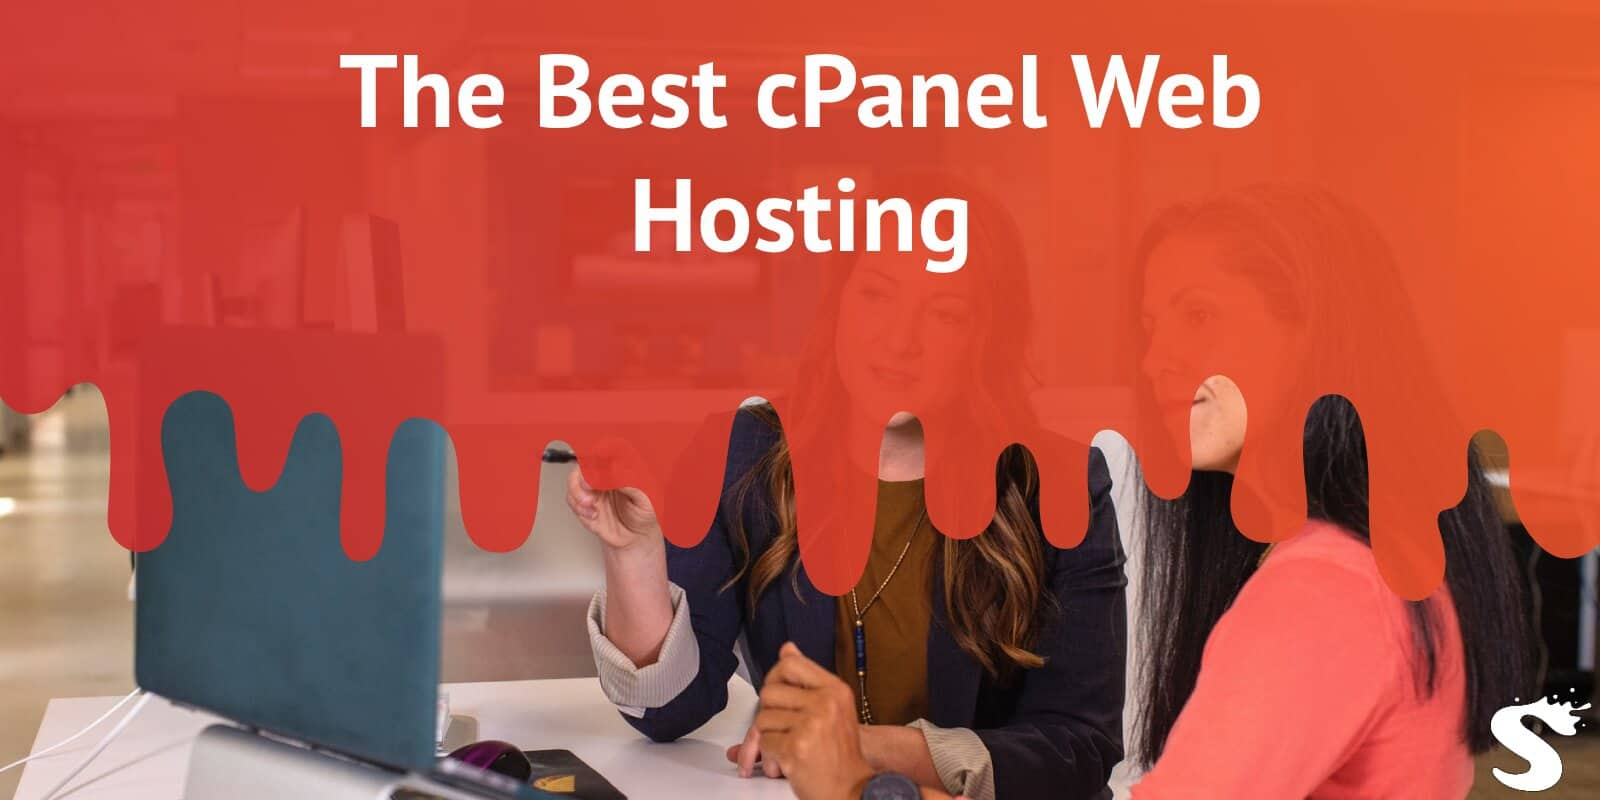 The Best cPanel Web Hosting